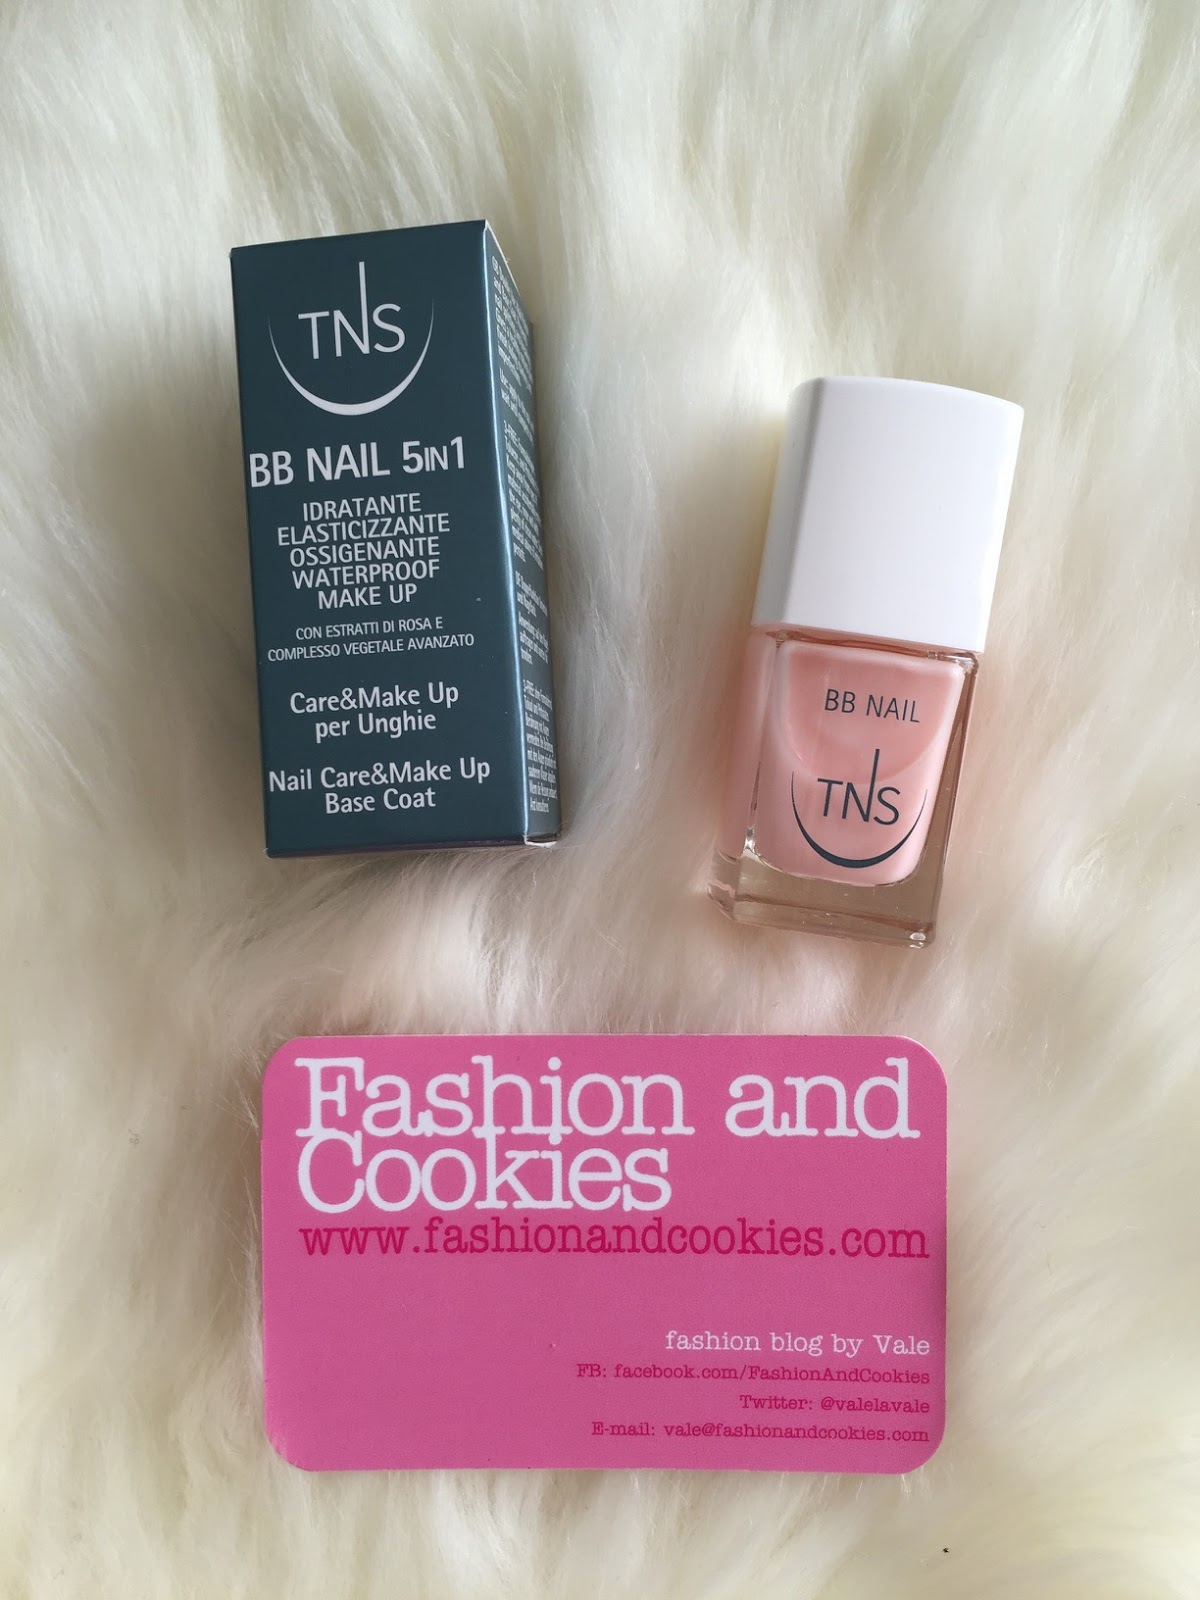 TNS cosmetics bb nail on Fashion and Cookies beauty blog, beauty blogger